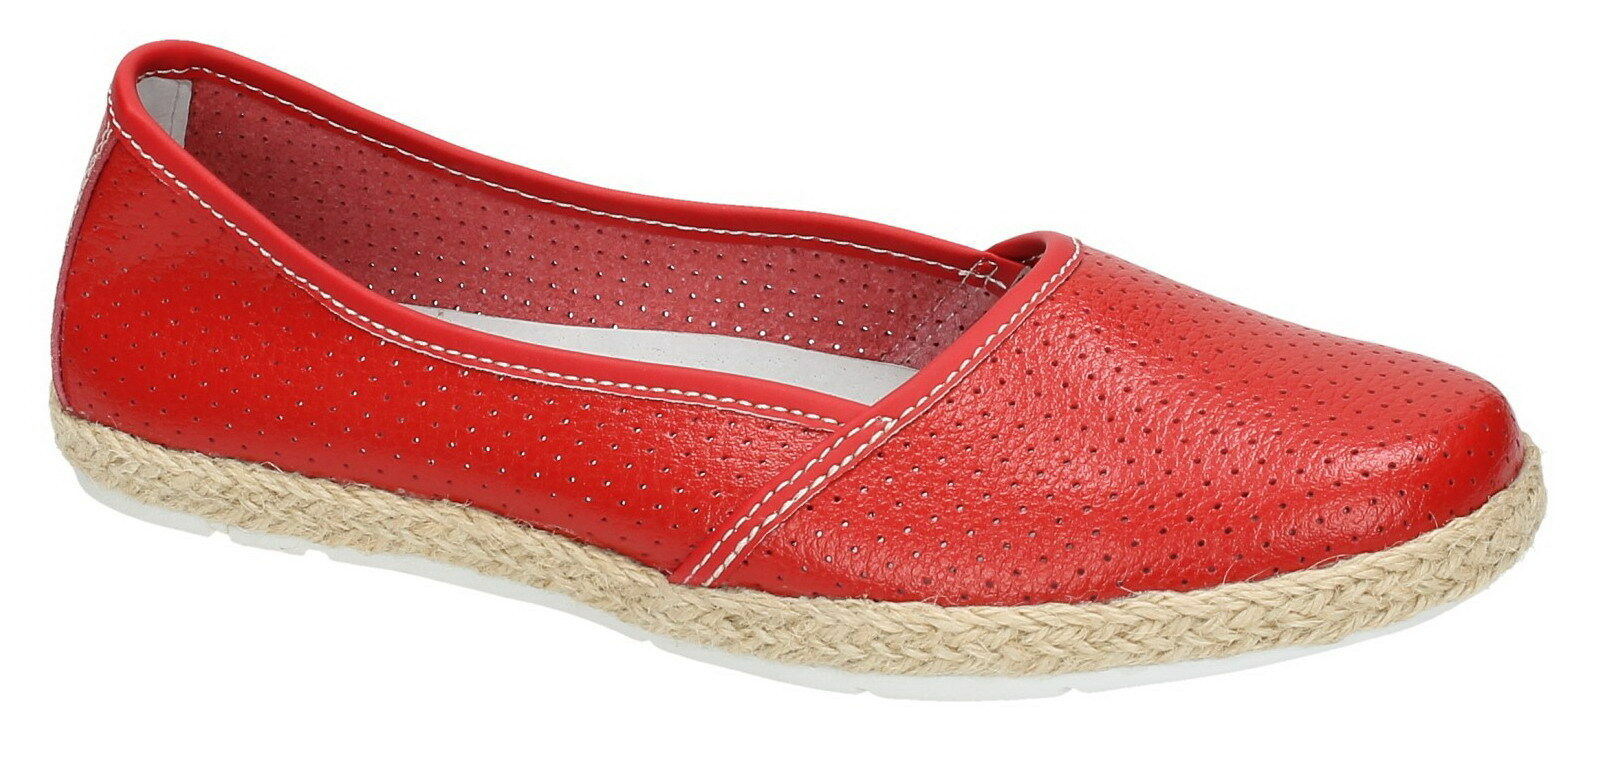 Down To Earth F80161 Ladies Red Slip On Leather Casual Espadrille shoes